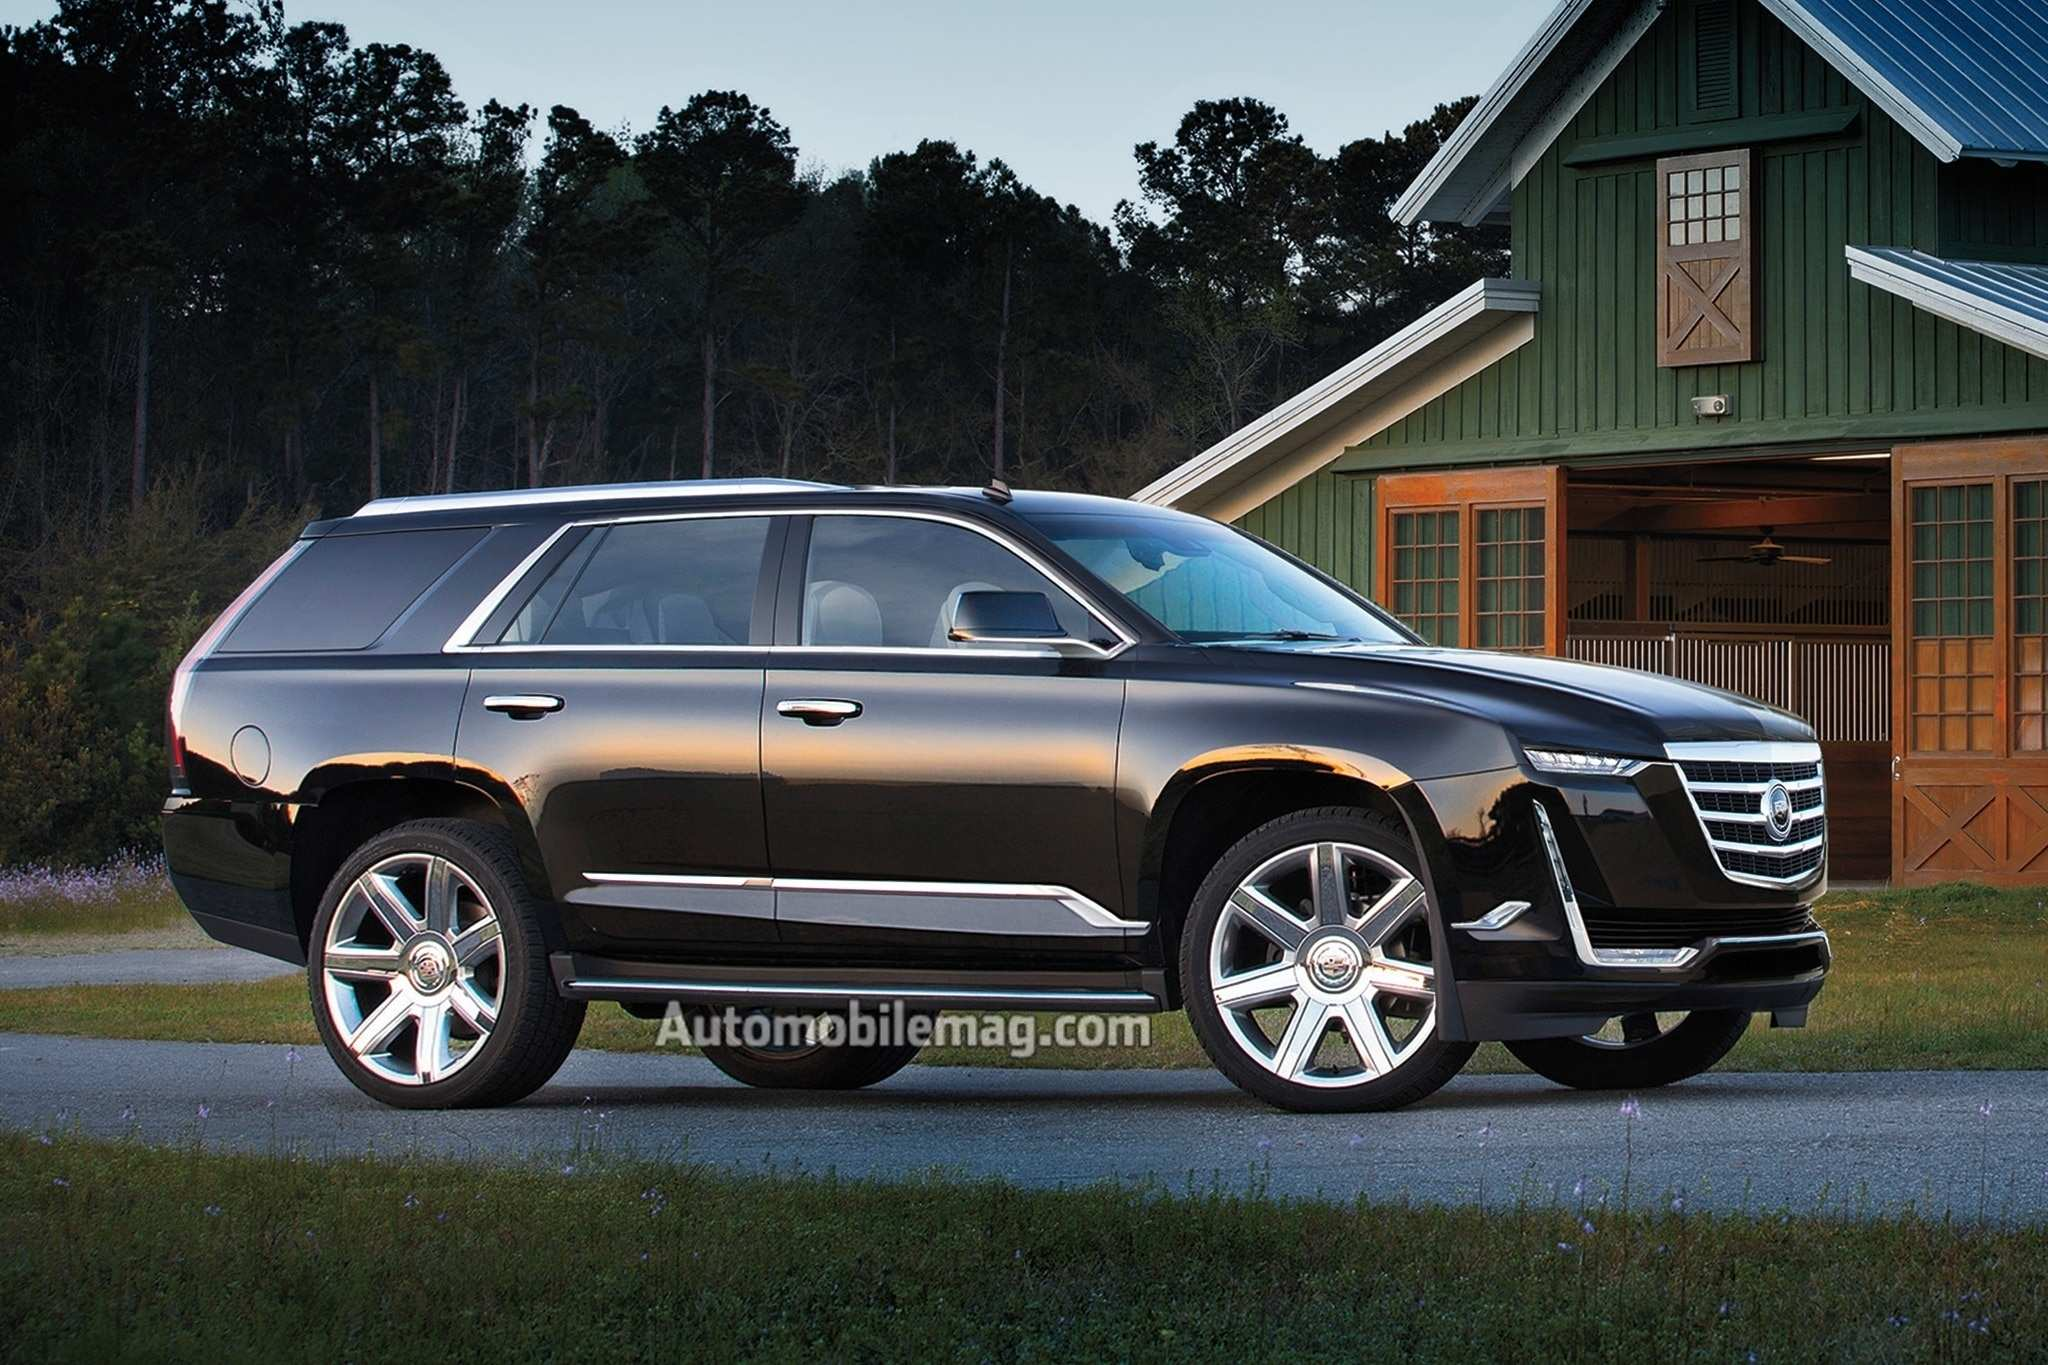 75 Concept of Gmc Yukon 2020 Release Date Images by Gmc Yukon 2020 Release Date